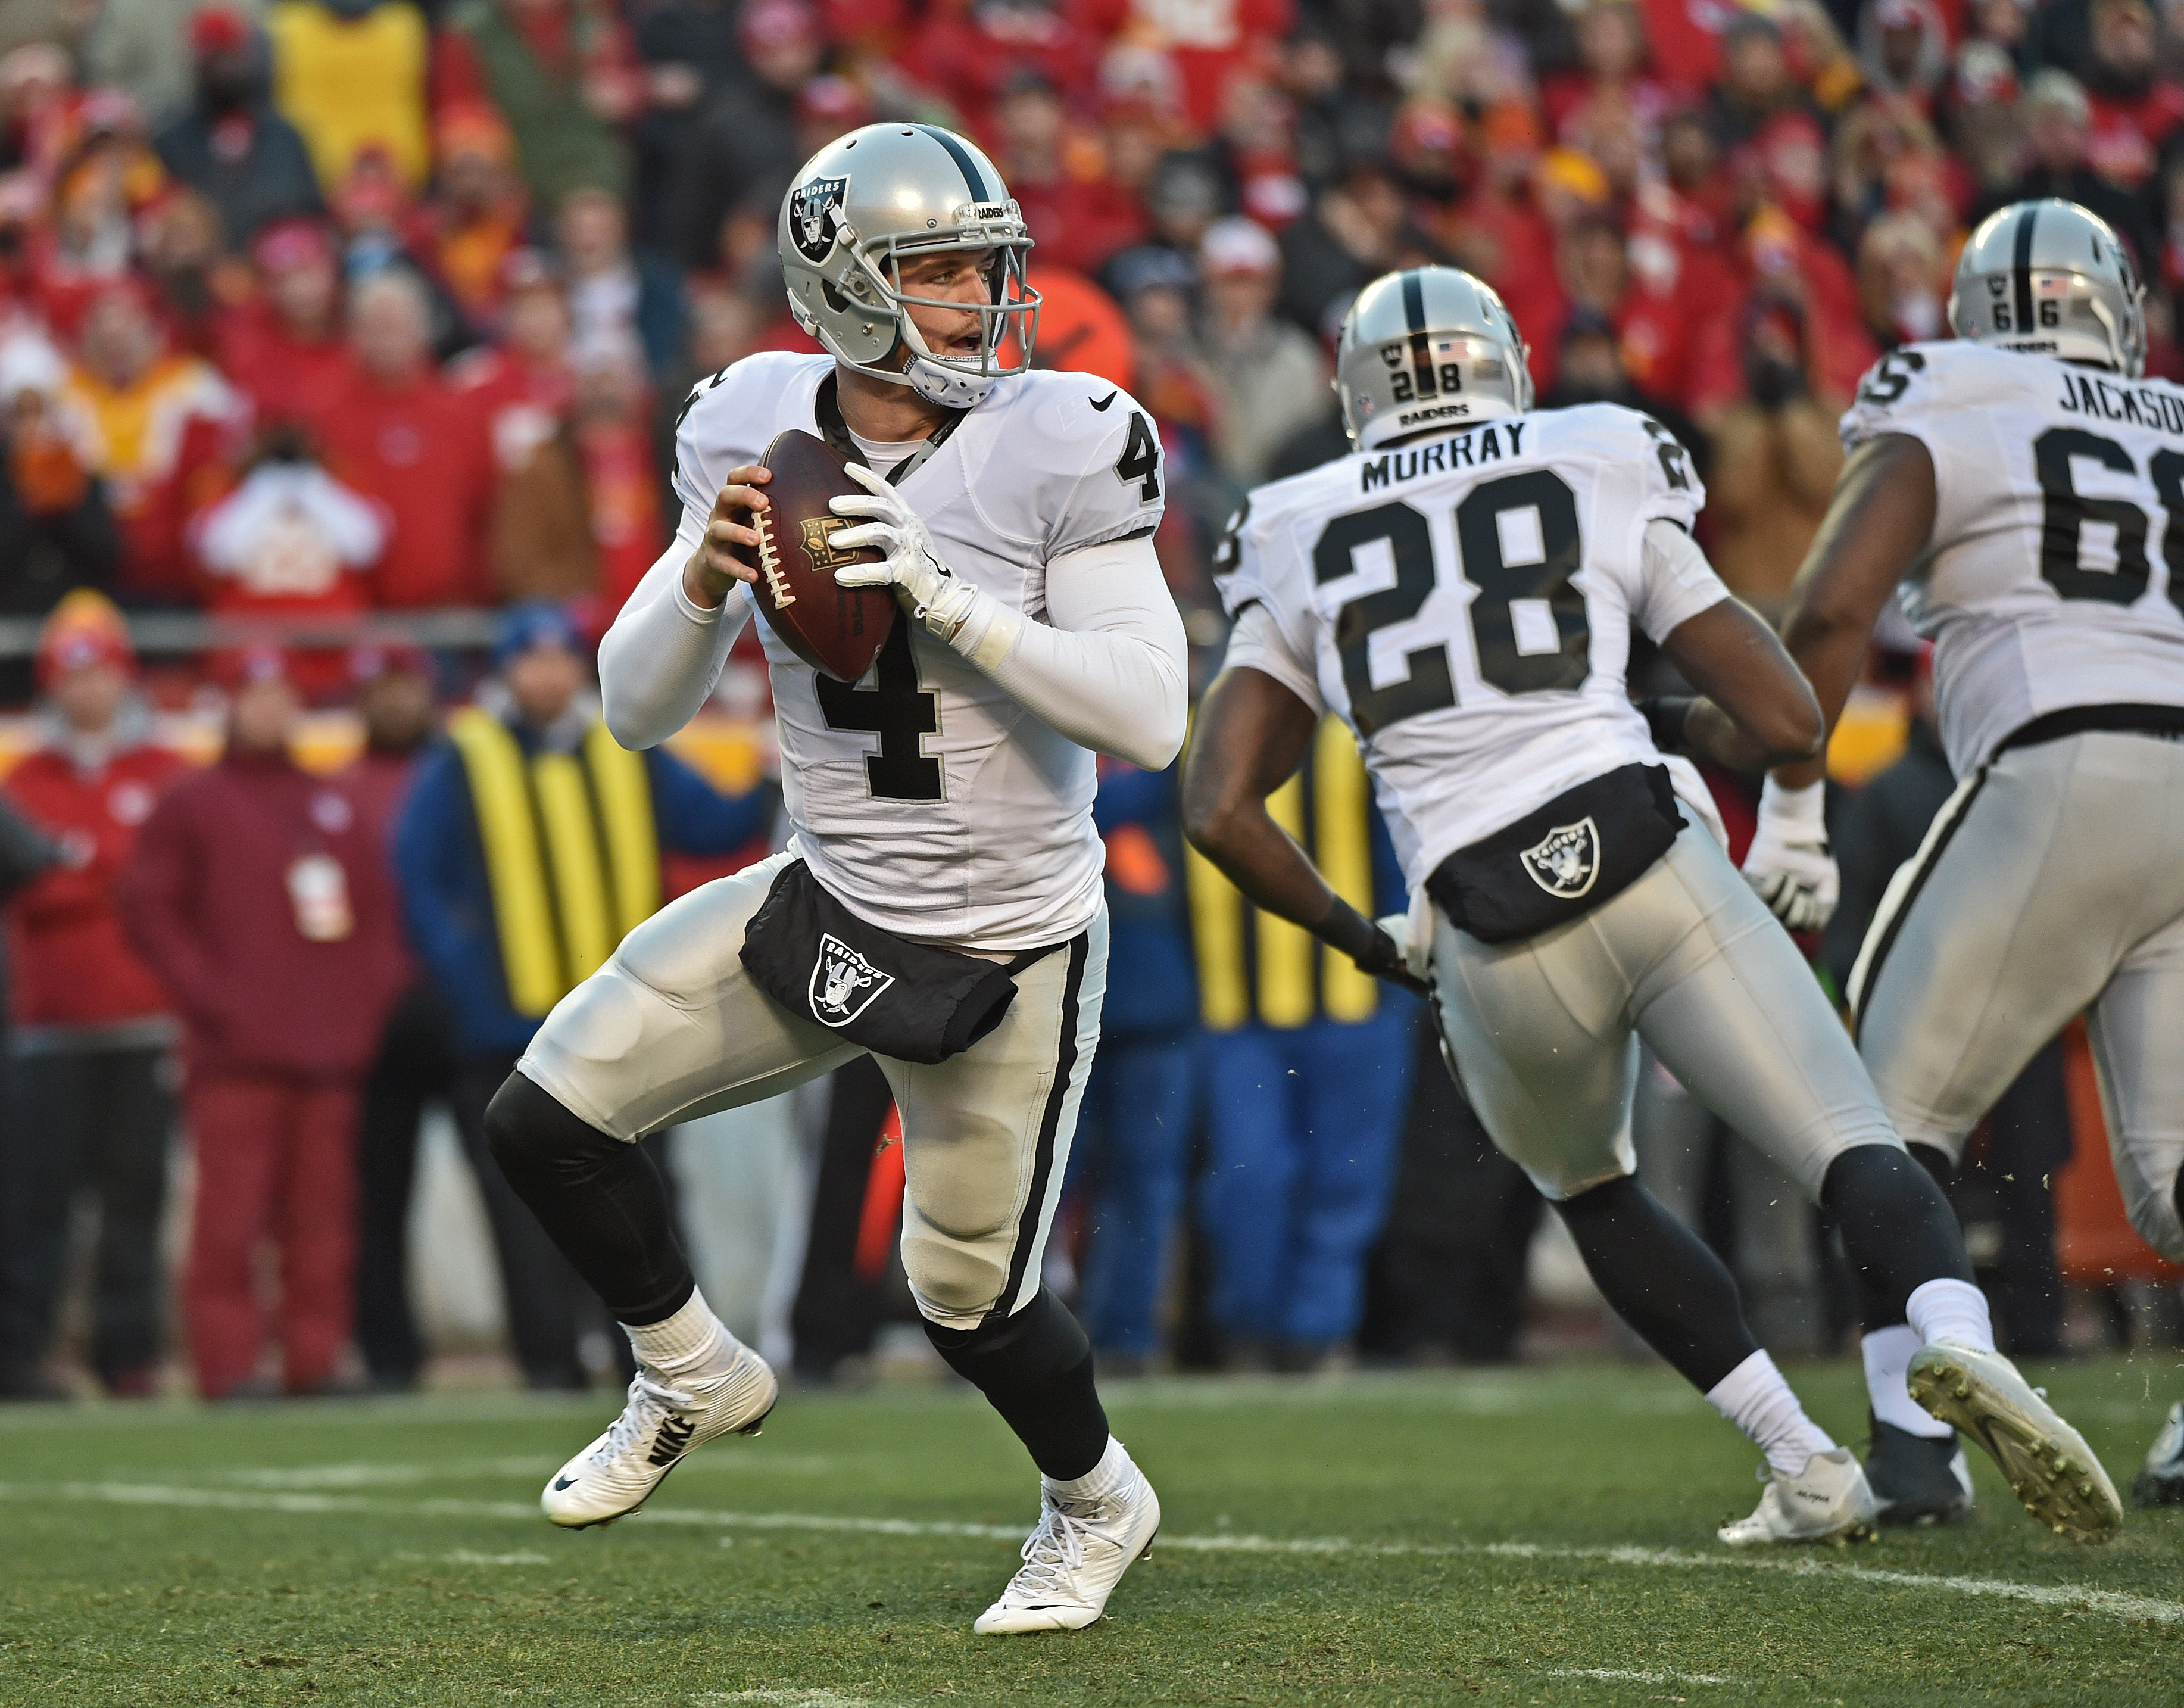 Quarterback Derek Carr #4 of the Oakland Raiders drops back to pass against the Kansas City Chiefs during the first half on January 3, 2016 at Arrowhead Stadium in Kansas City, Missouri